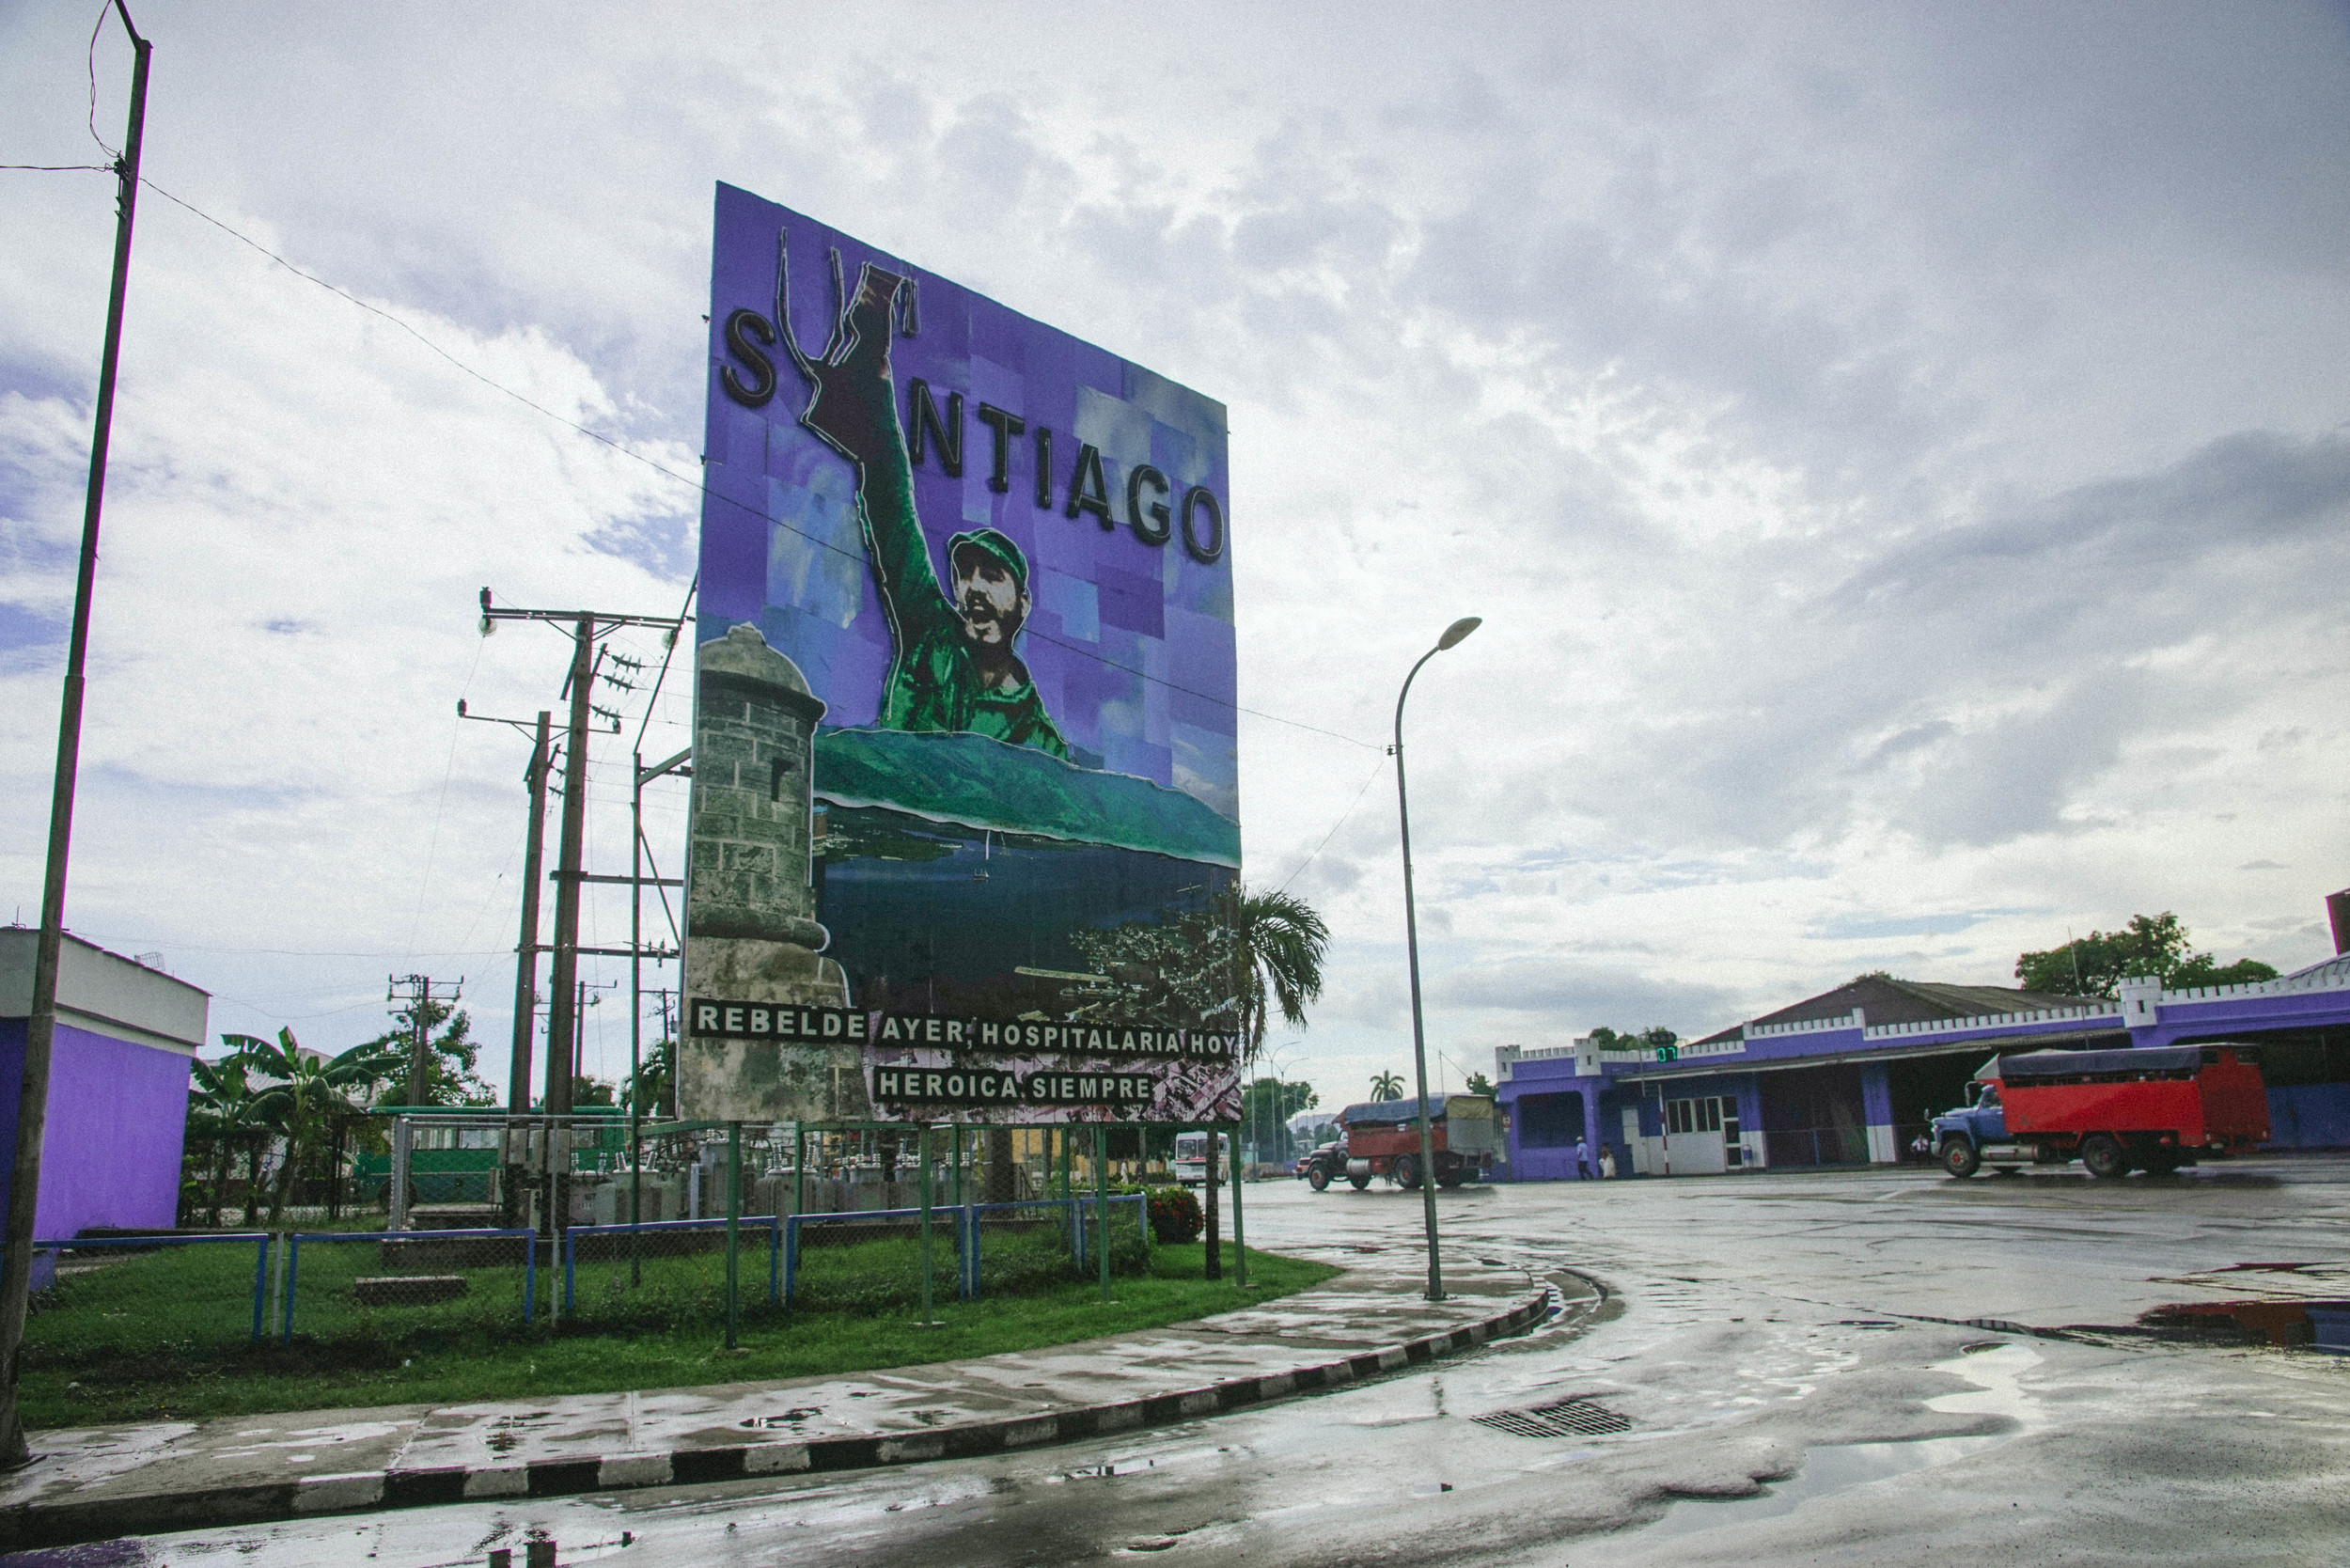 """Castro greeting us on arrival to the city. """"Rebels yesterday, hospitable today, heroes forever."""""""